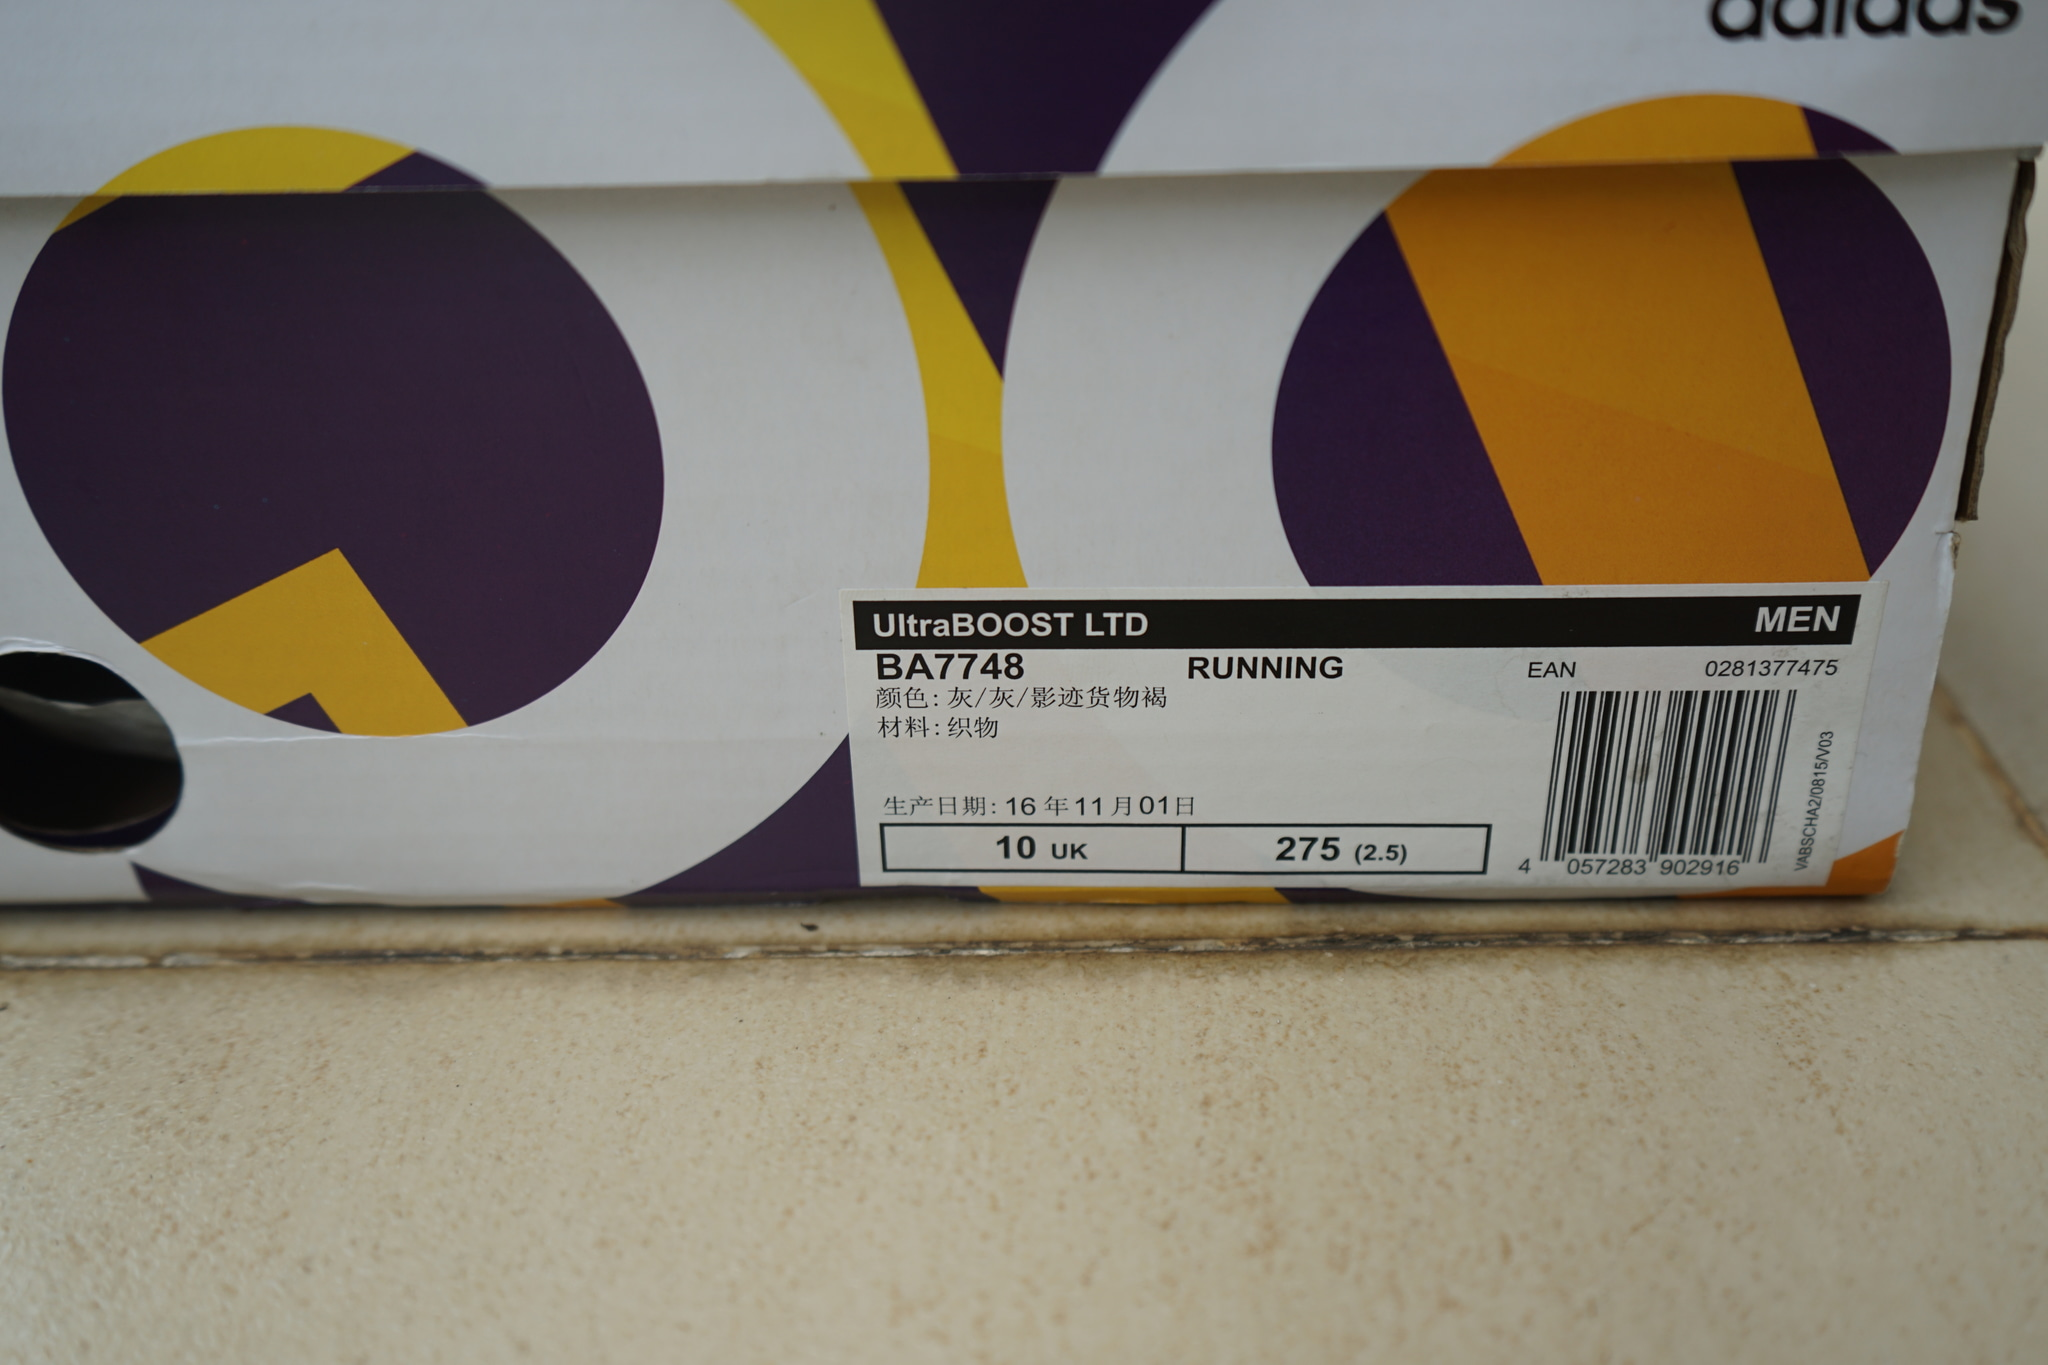 2017 Adidas Ultra Boost 3.0 White S80681 review from citysole.net